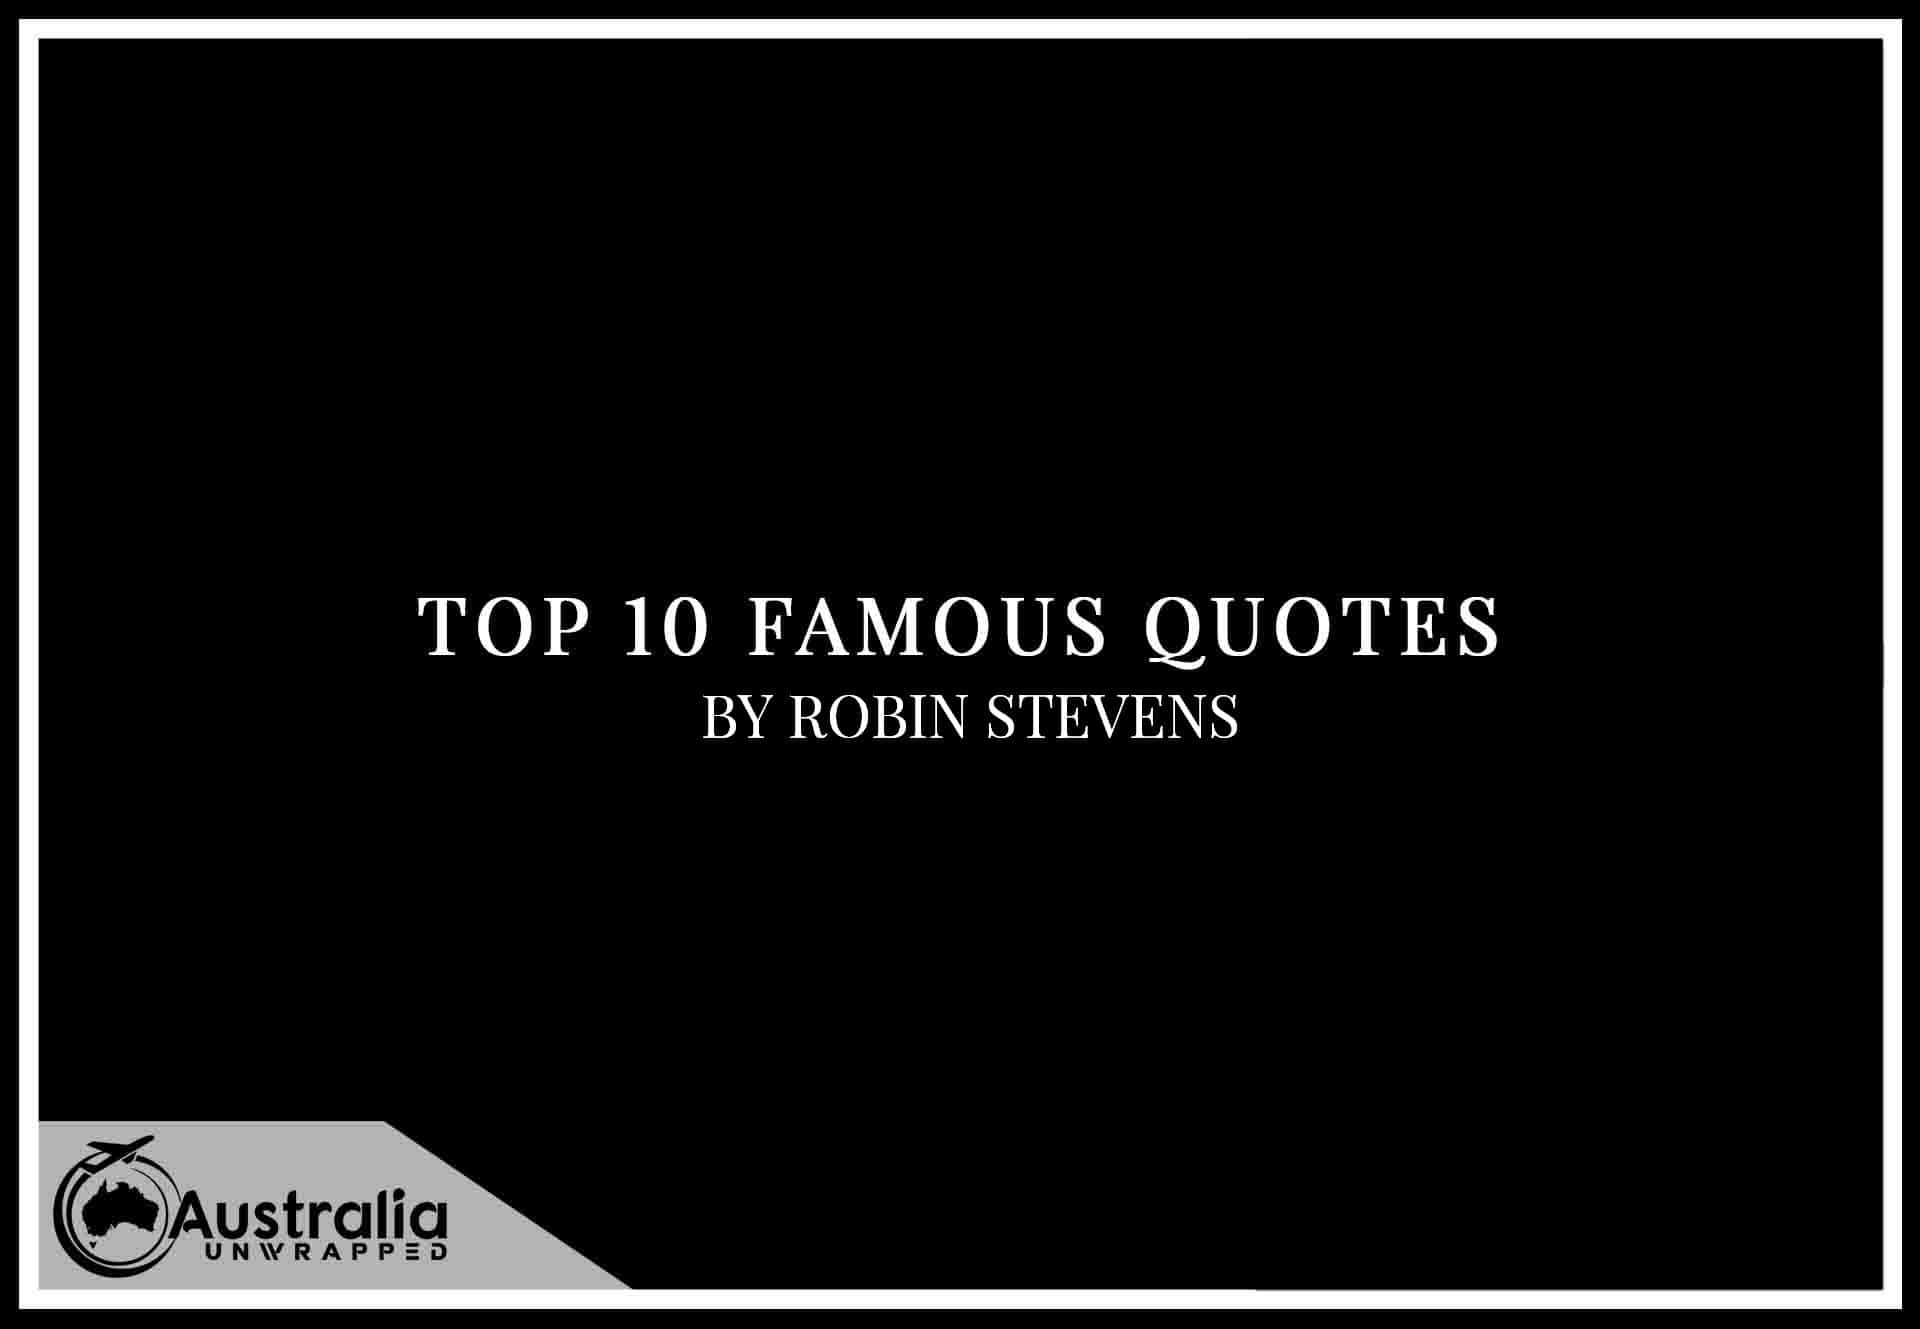 Top 10 Famous Quotes by Author Robin Stevens